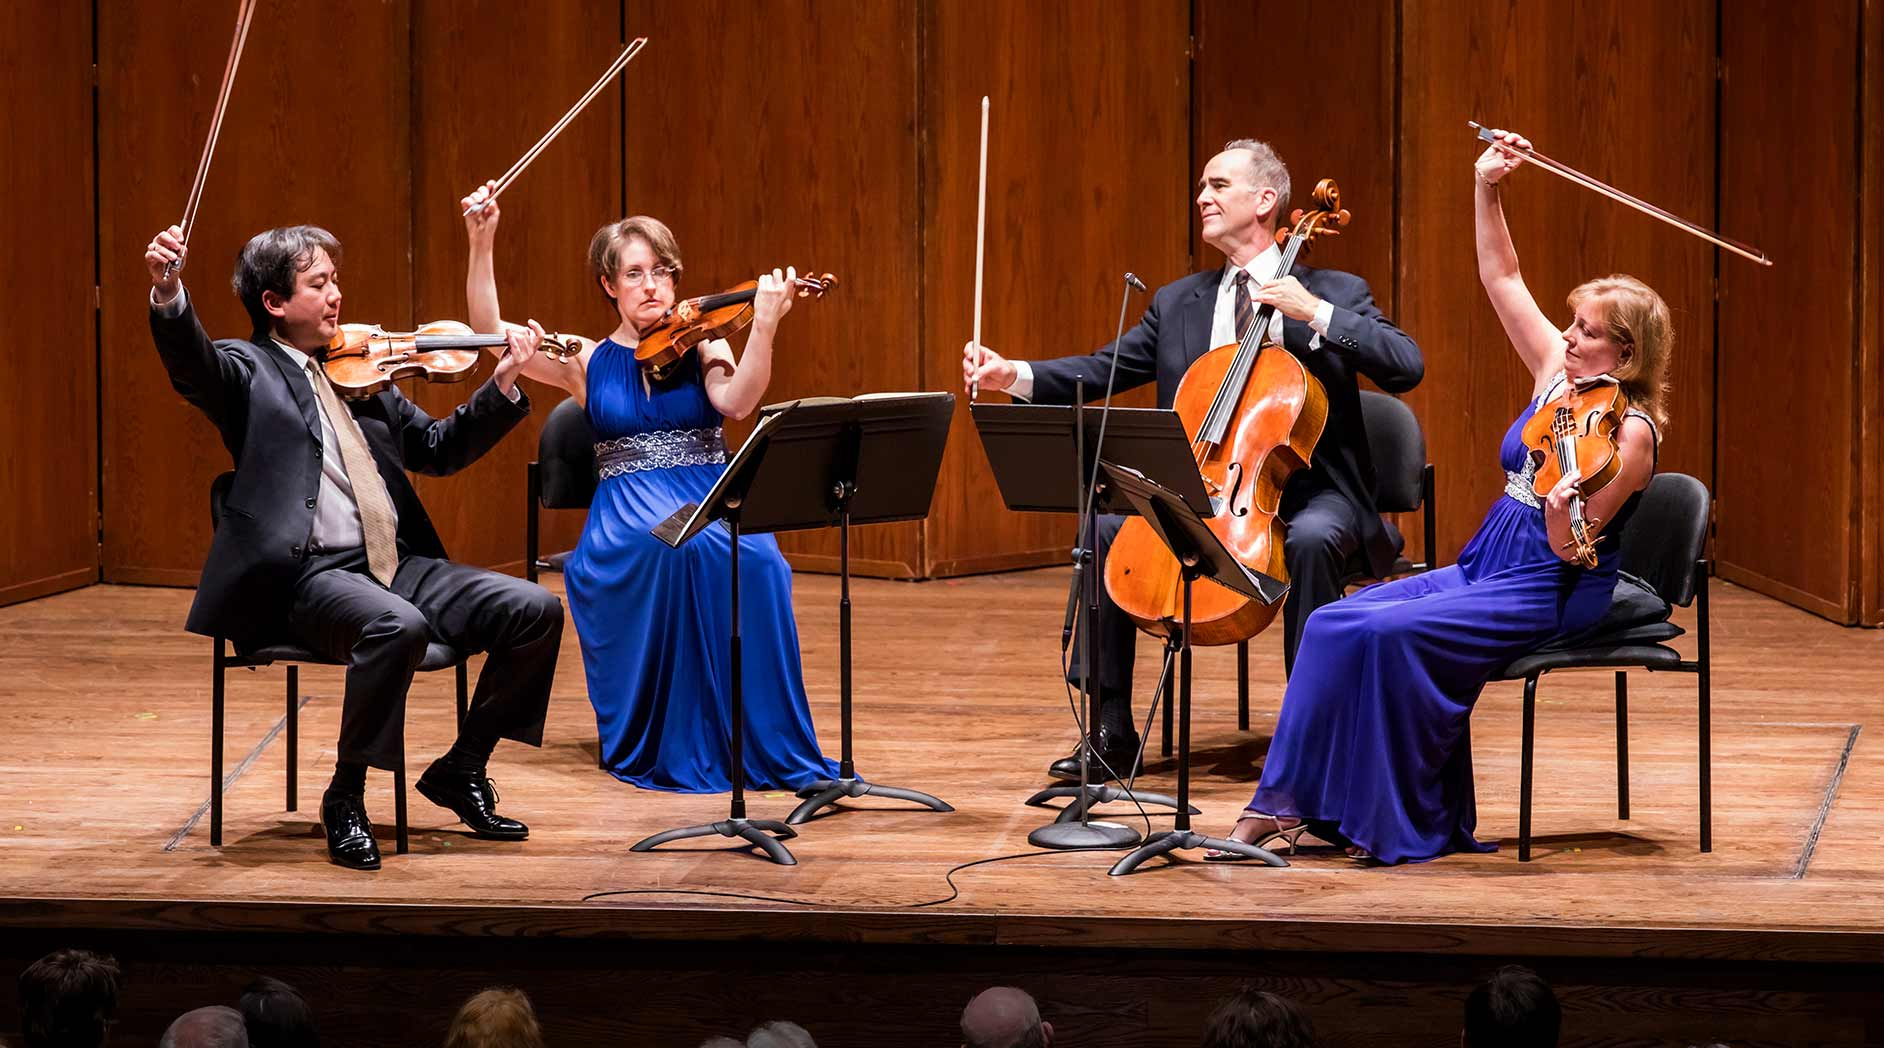 New York Philharmonic String Quartet Plays Schubert, Mendelssohn, and Ravel